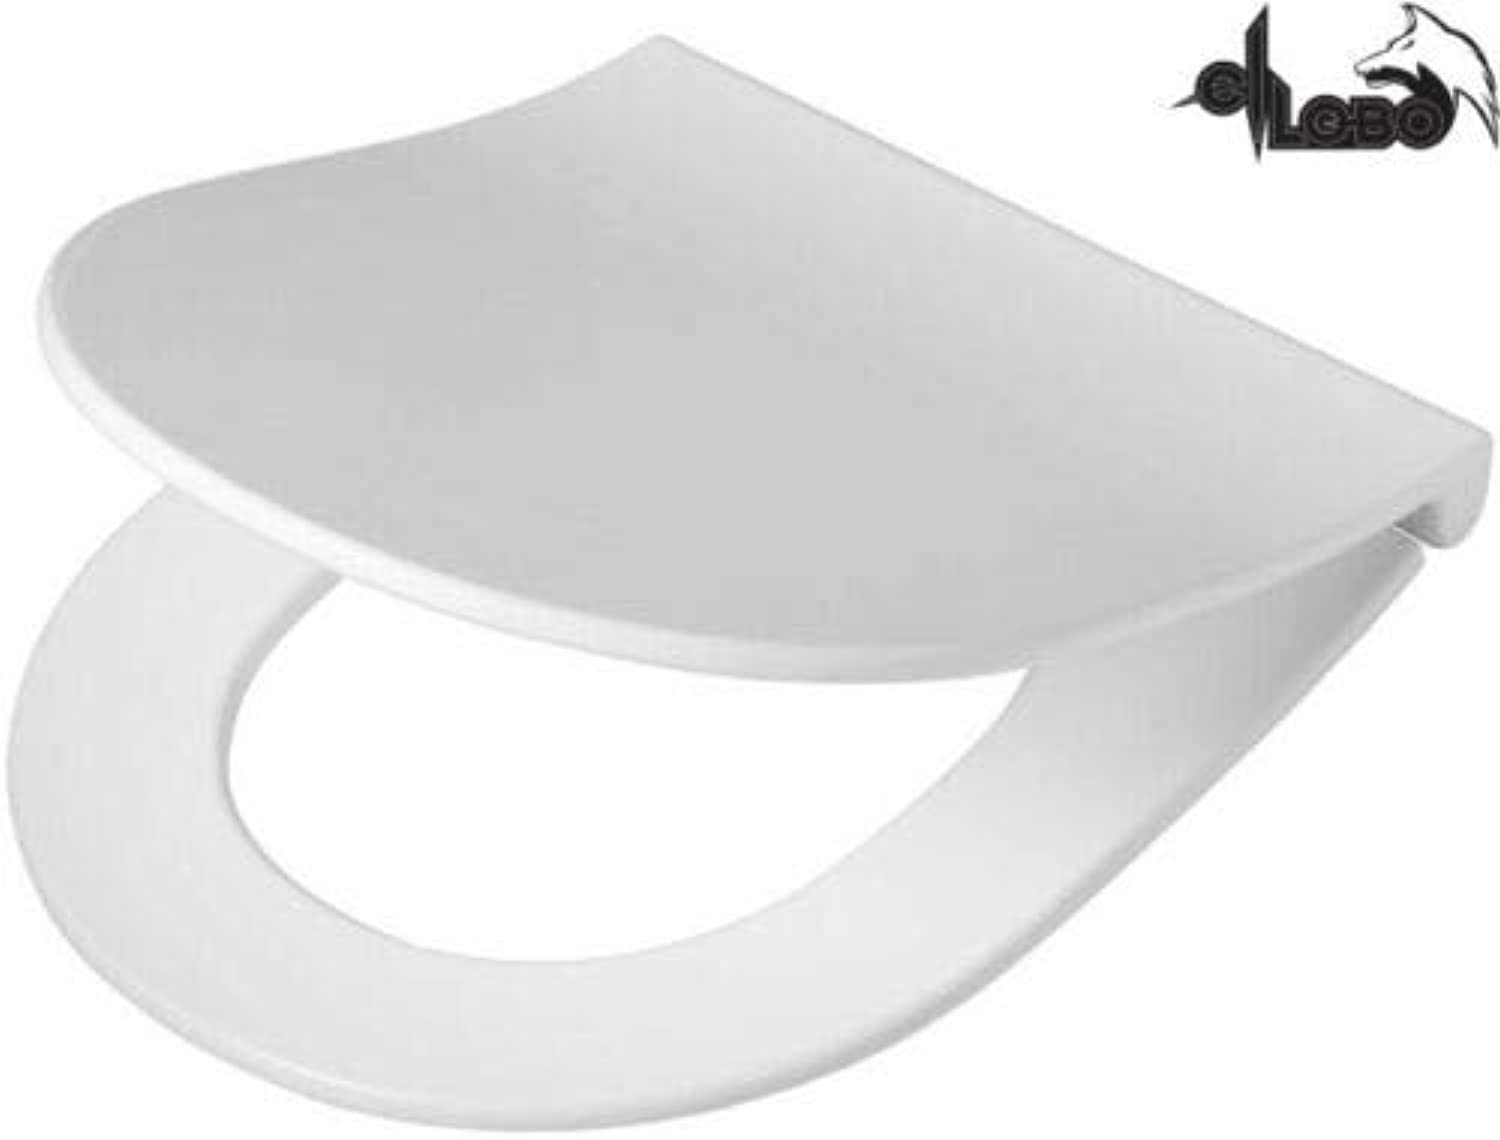 Pagette Subline - FLAT - WC Sitz - Softclose - TakeOff - Klick-o-matik - weiss - 7.9577-0202